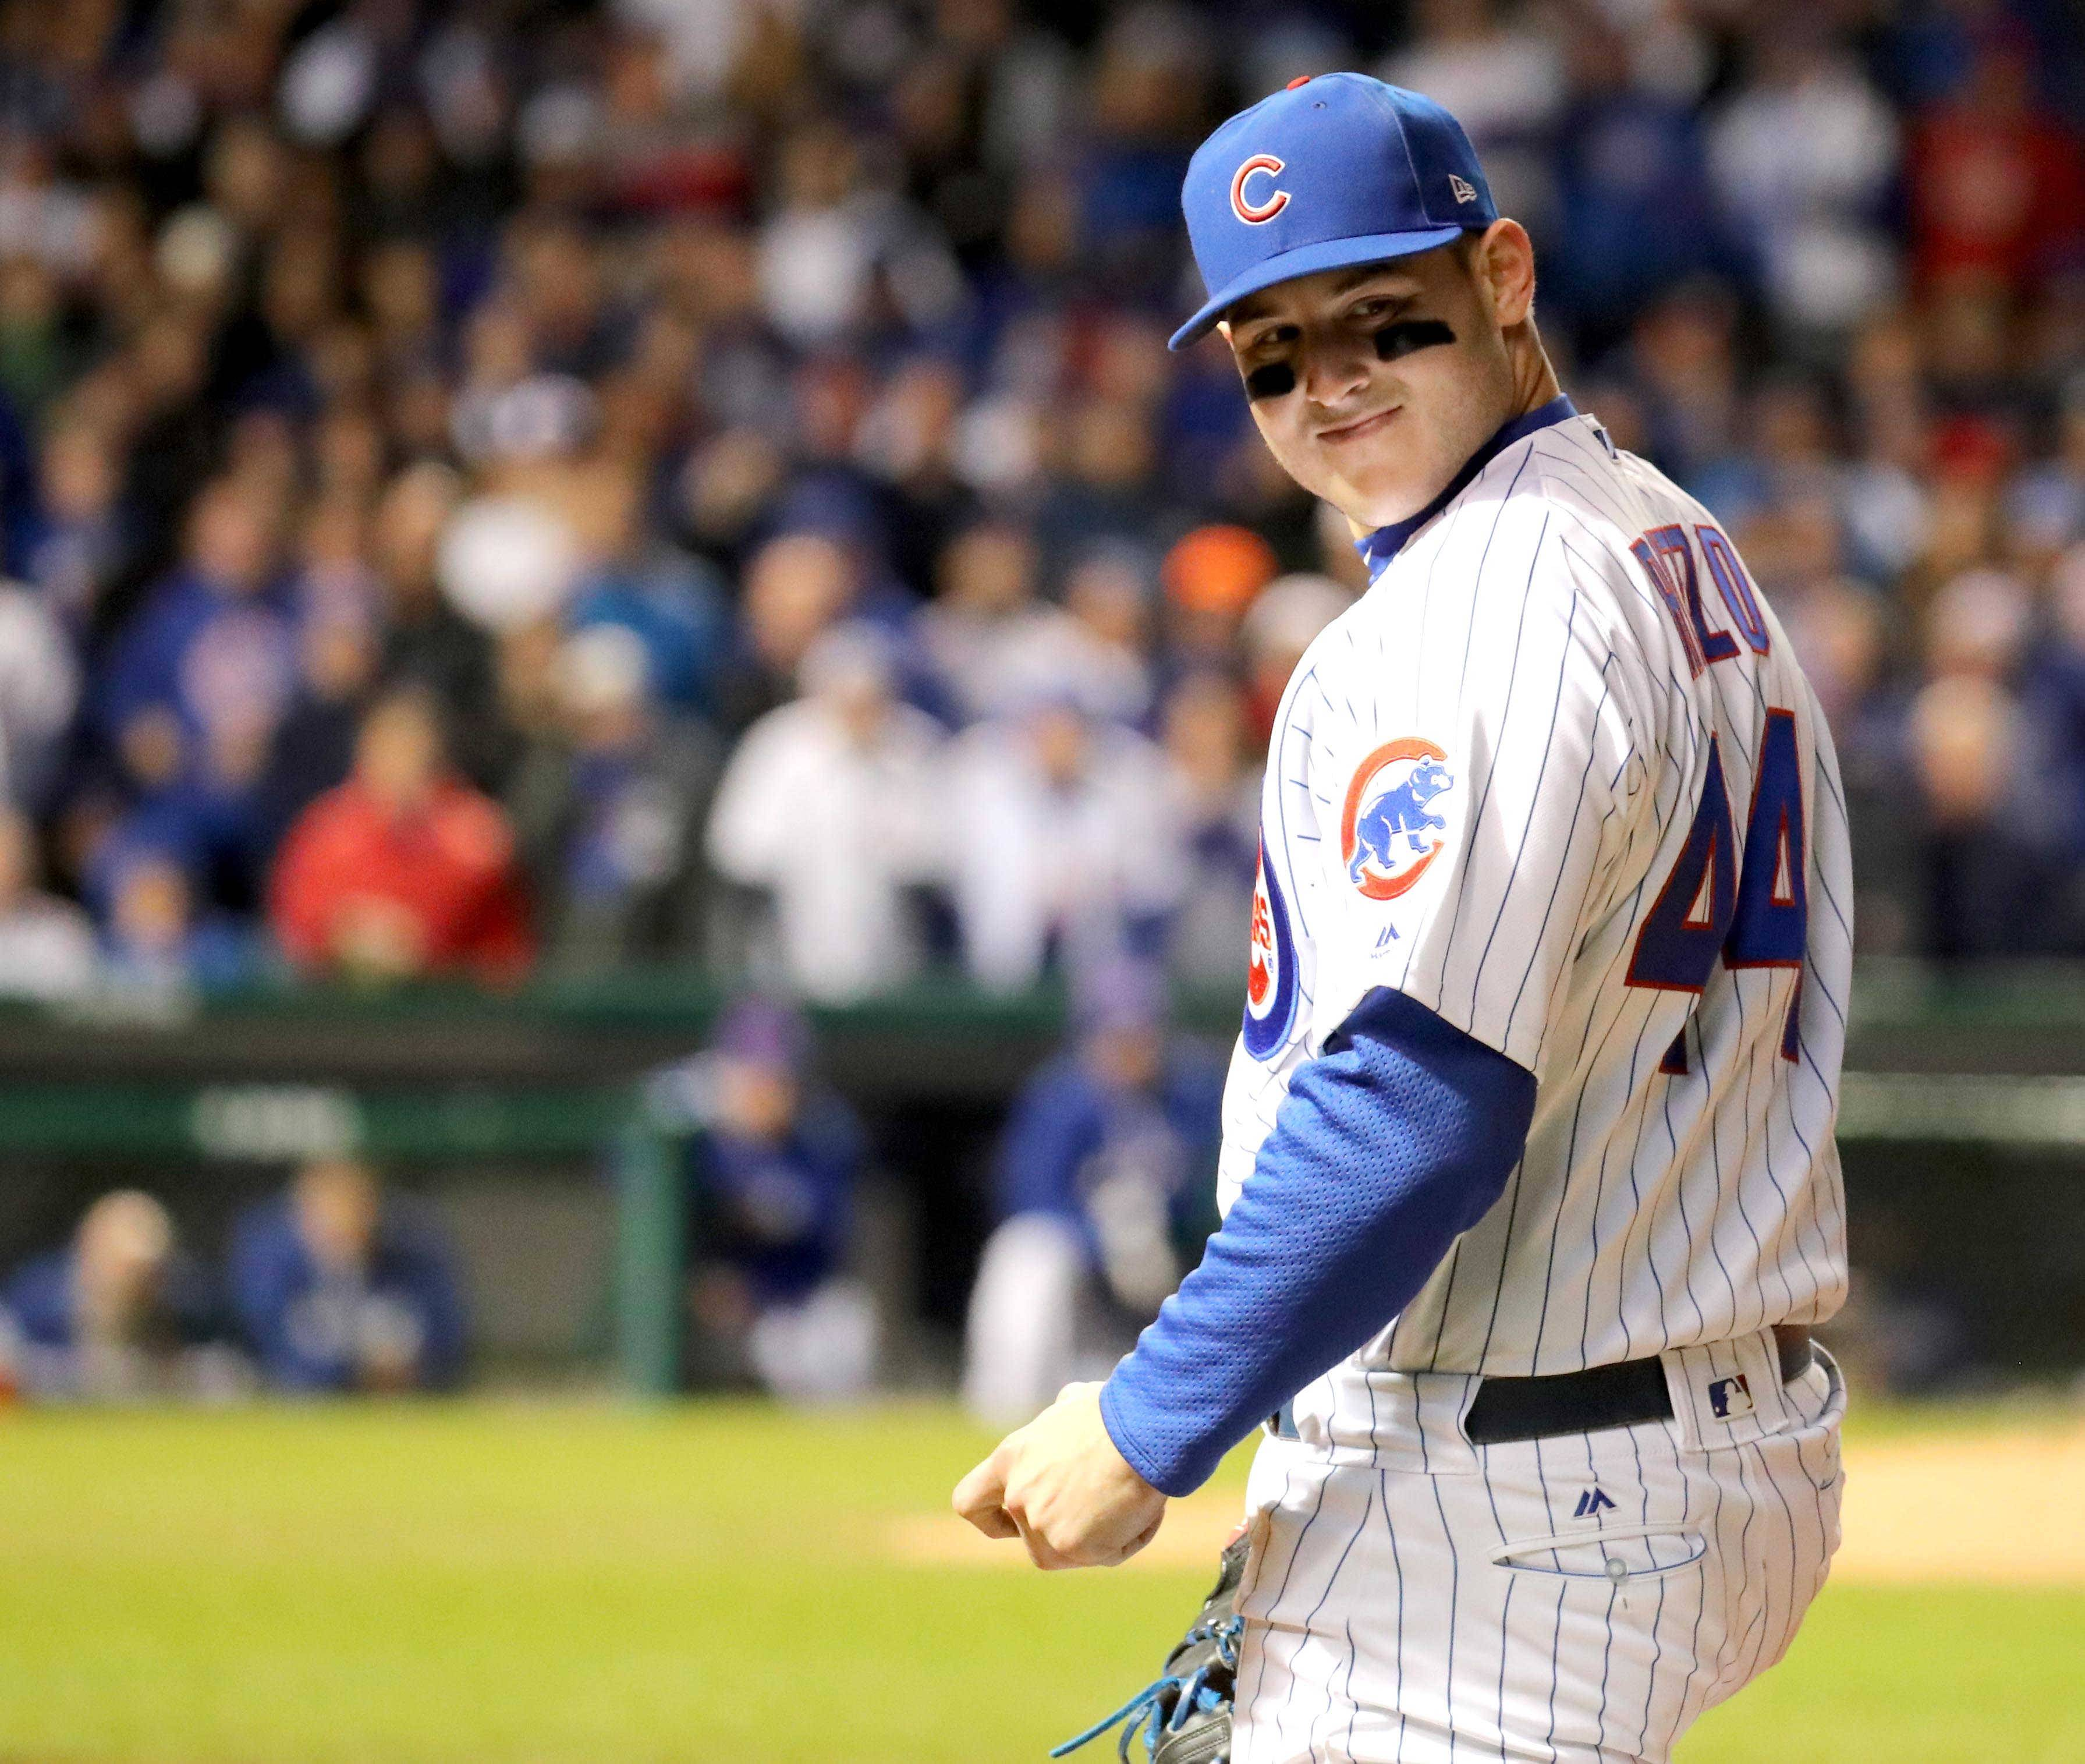 Rizzo remains the heart & soul of the Chicago Cubs